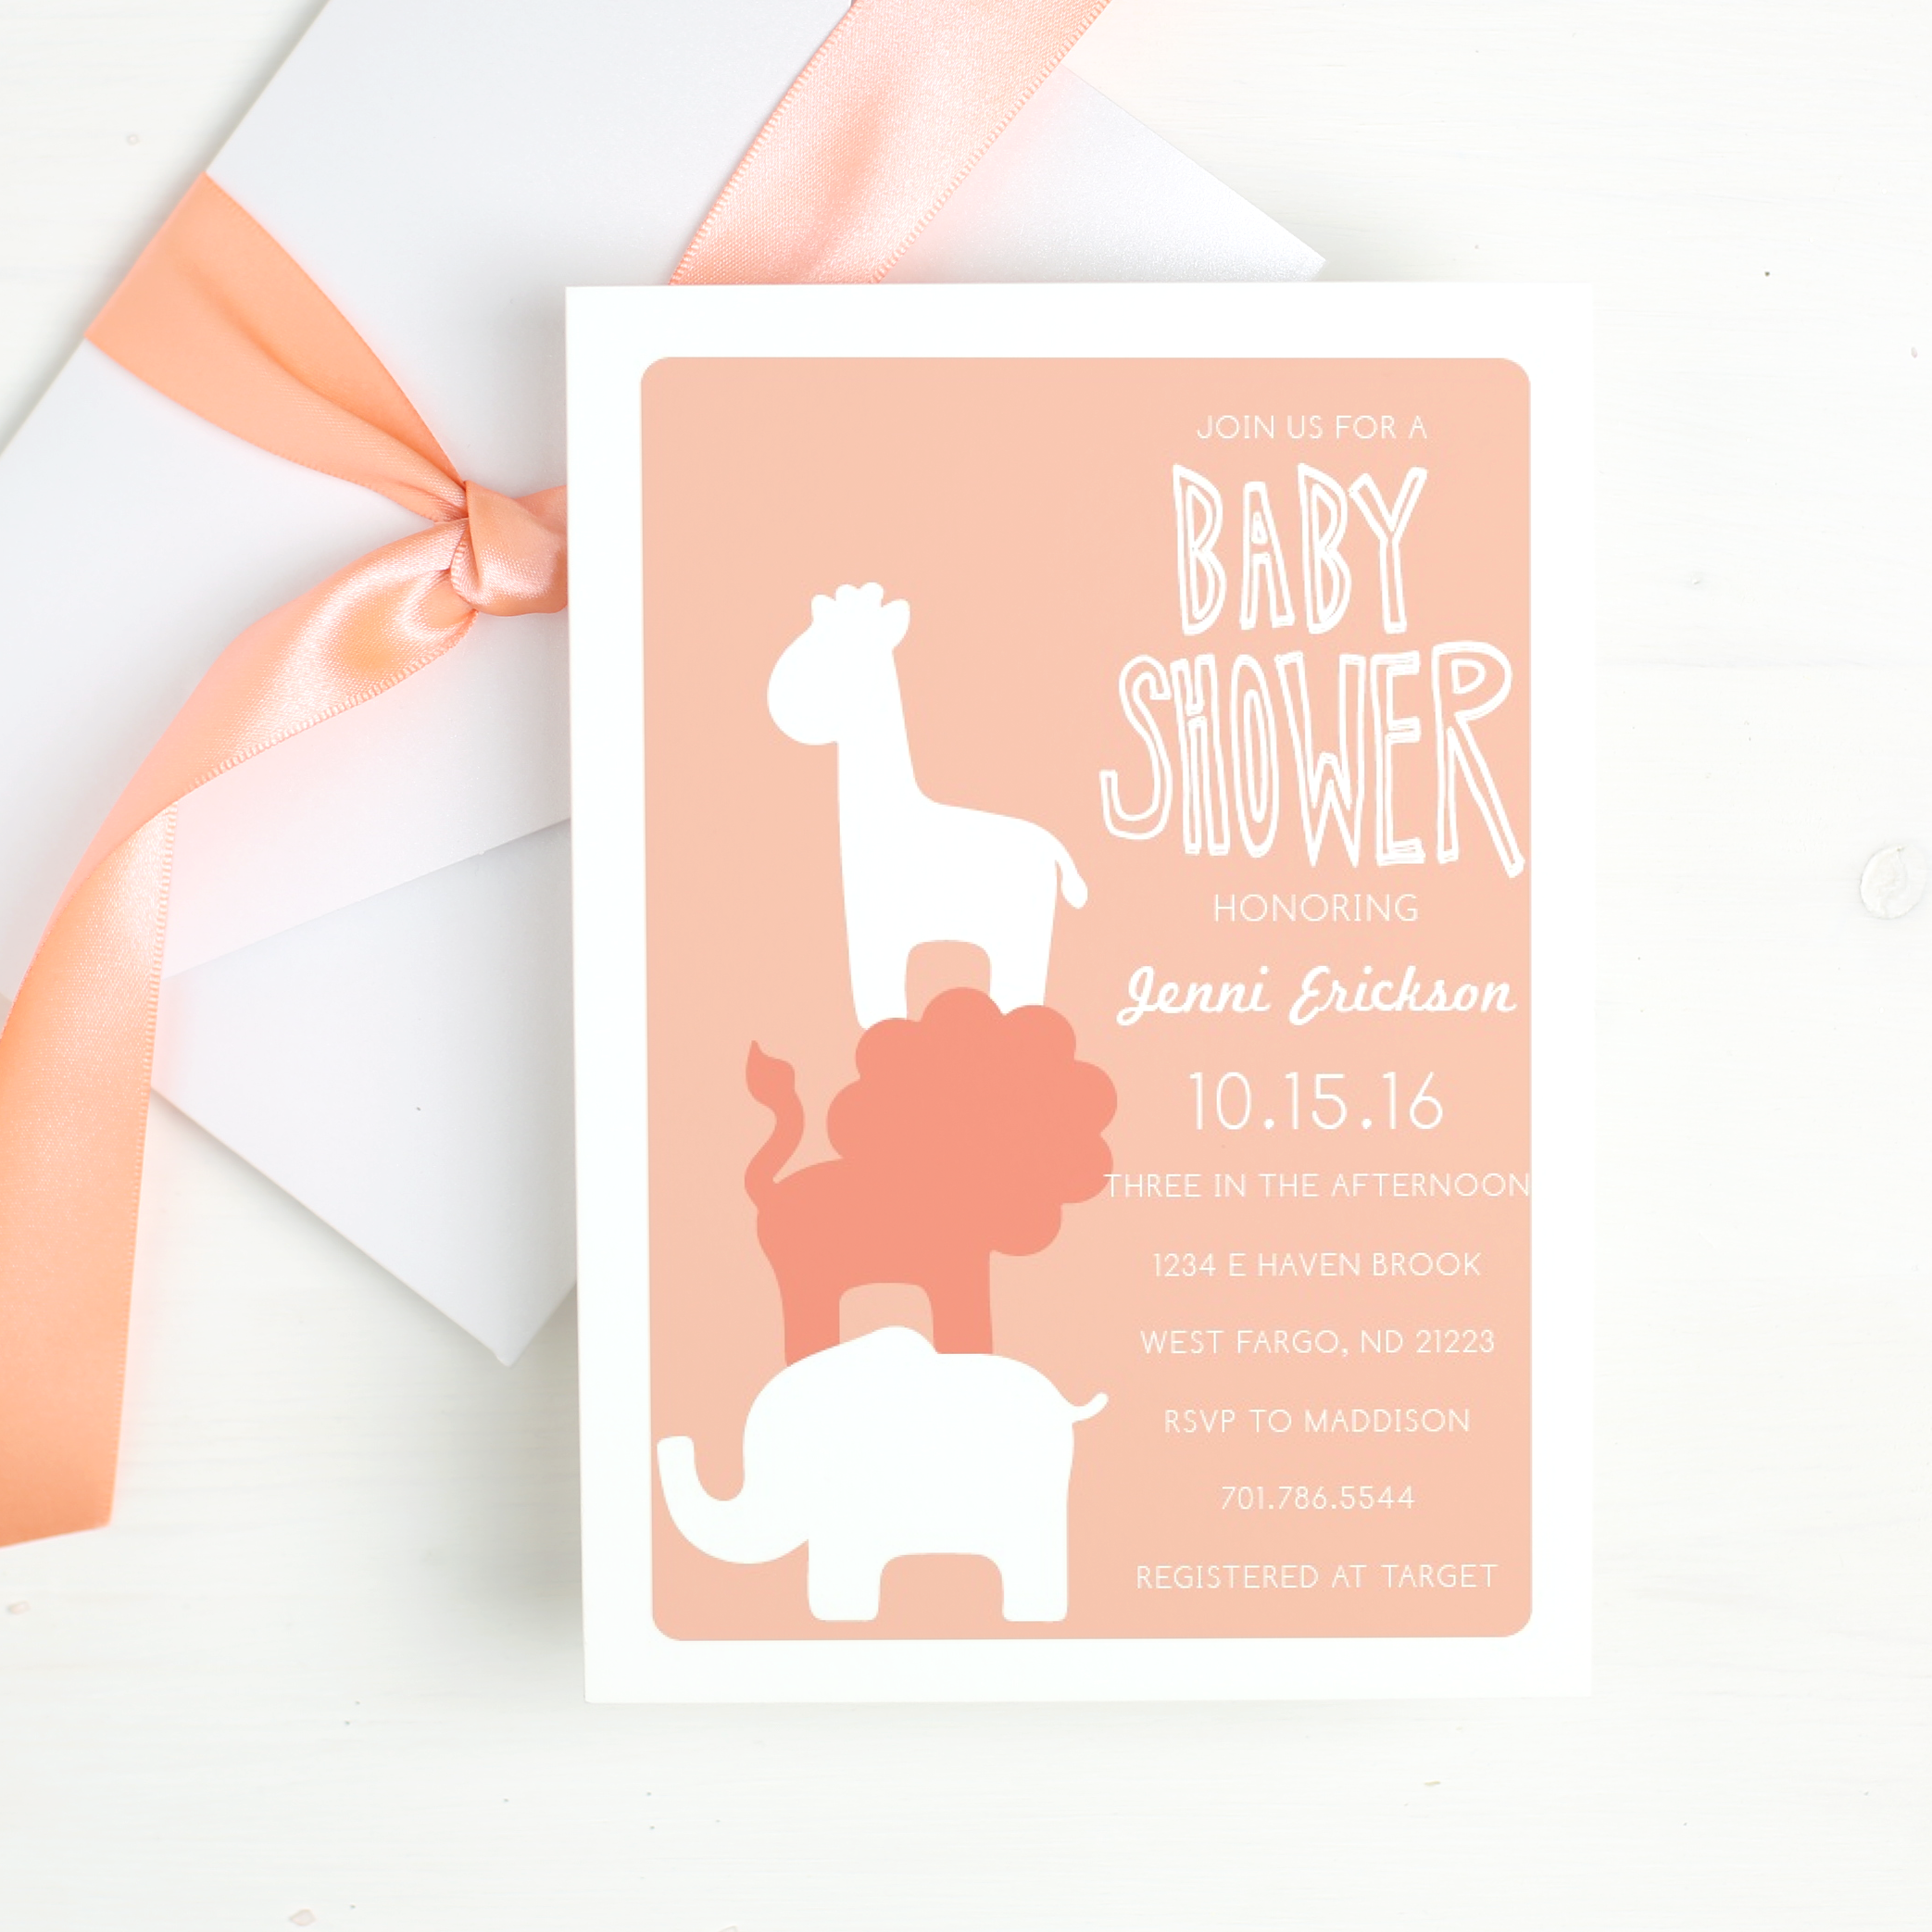 Basic_Invite_Baby_Shower_Invitations_6.png